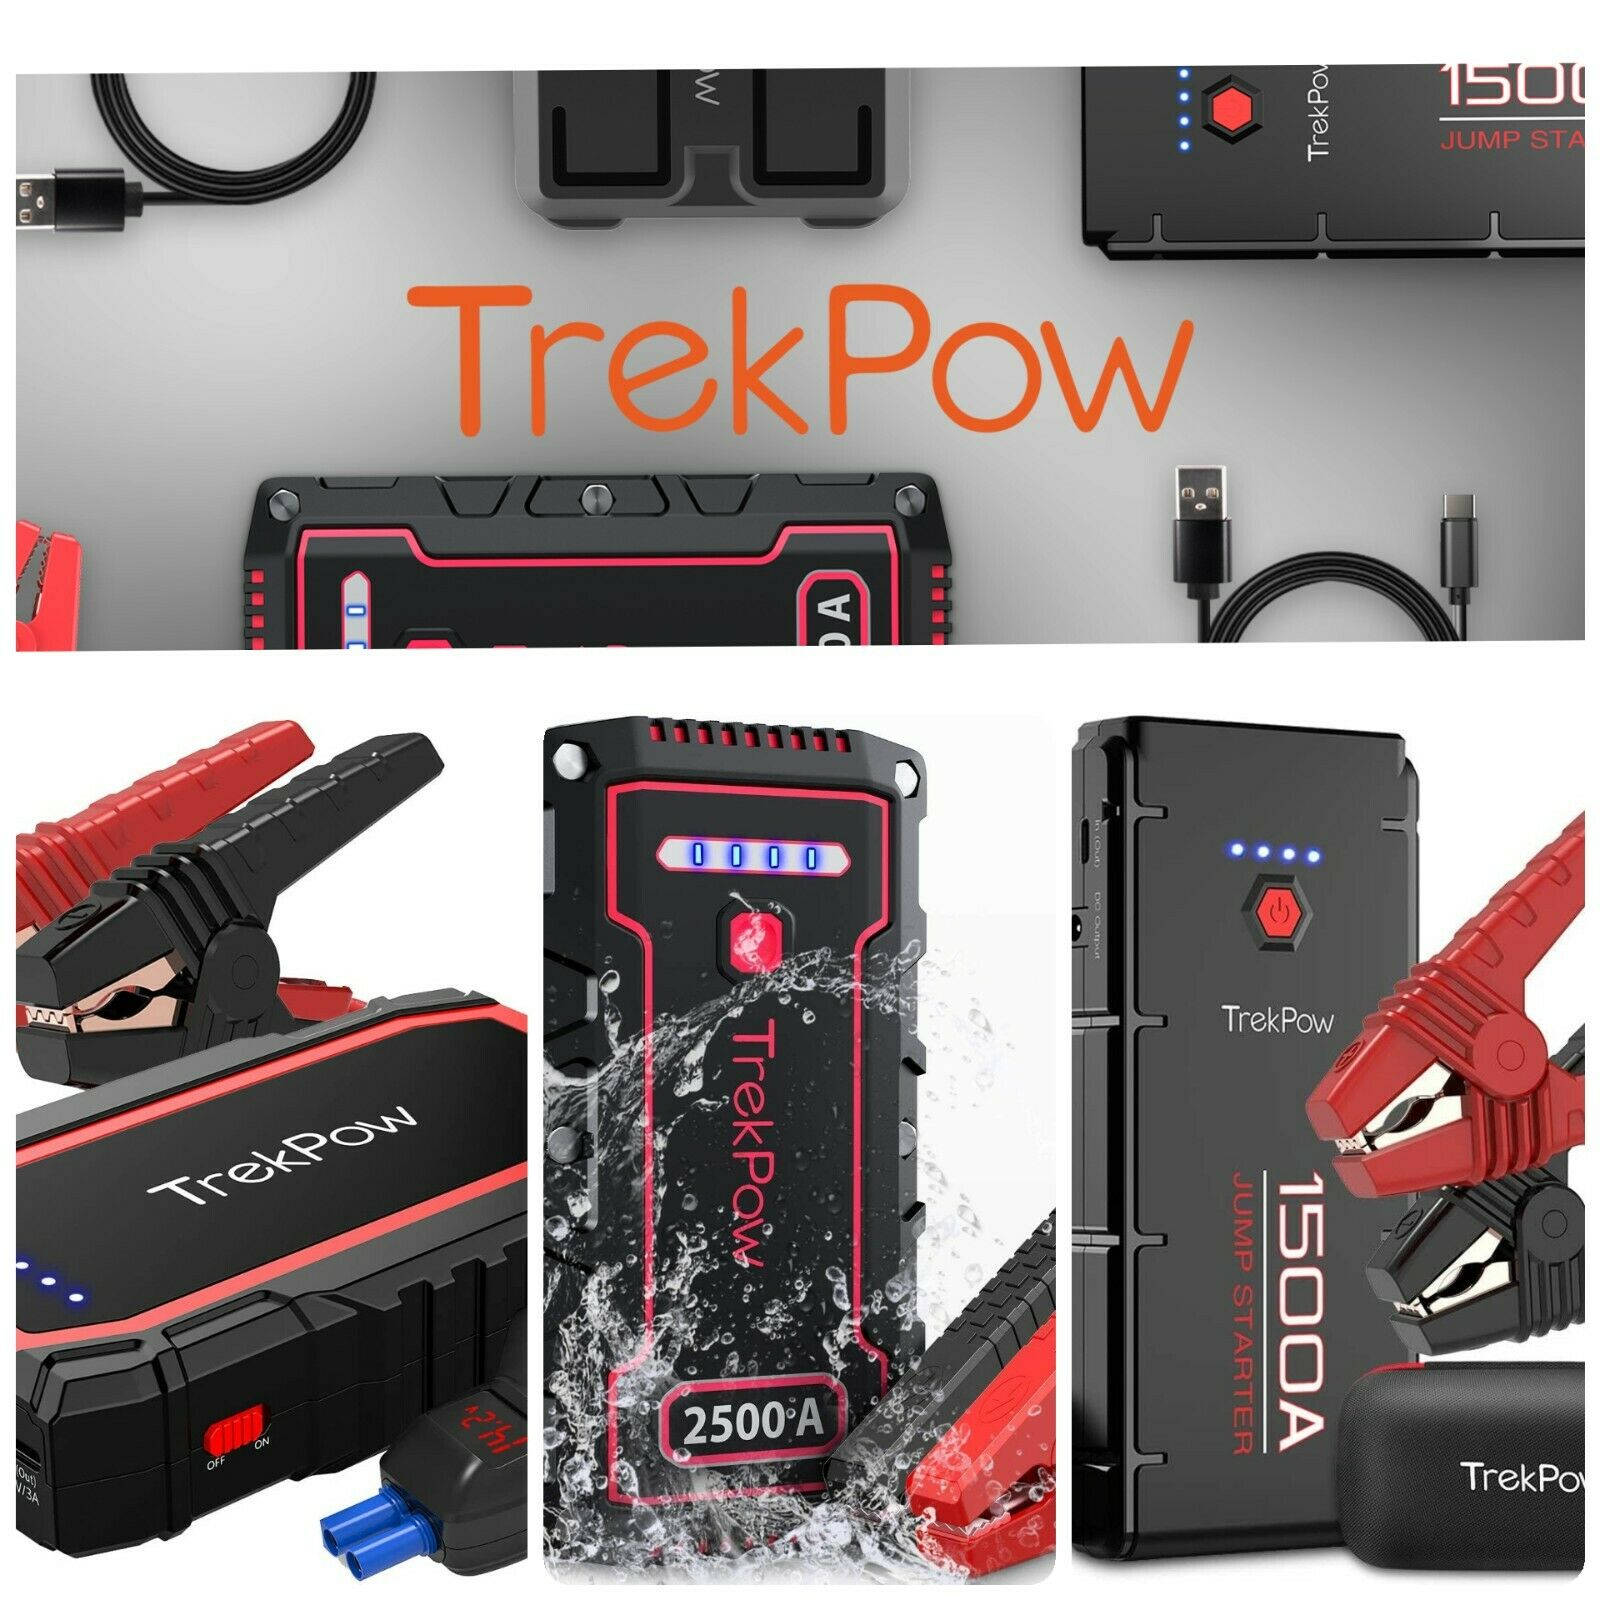 ⚡TrekPow Heavy Duty Truck Battery Booster Pack Jump Starter Box Portable Amps